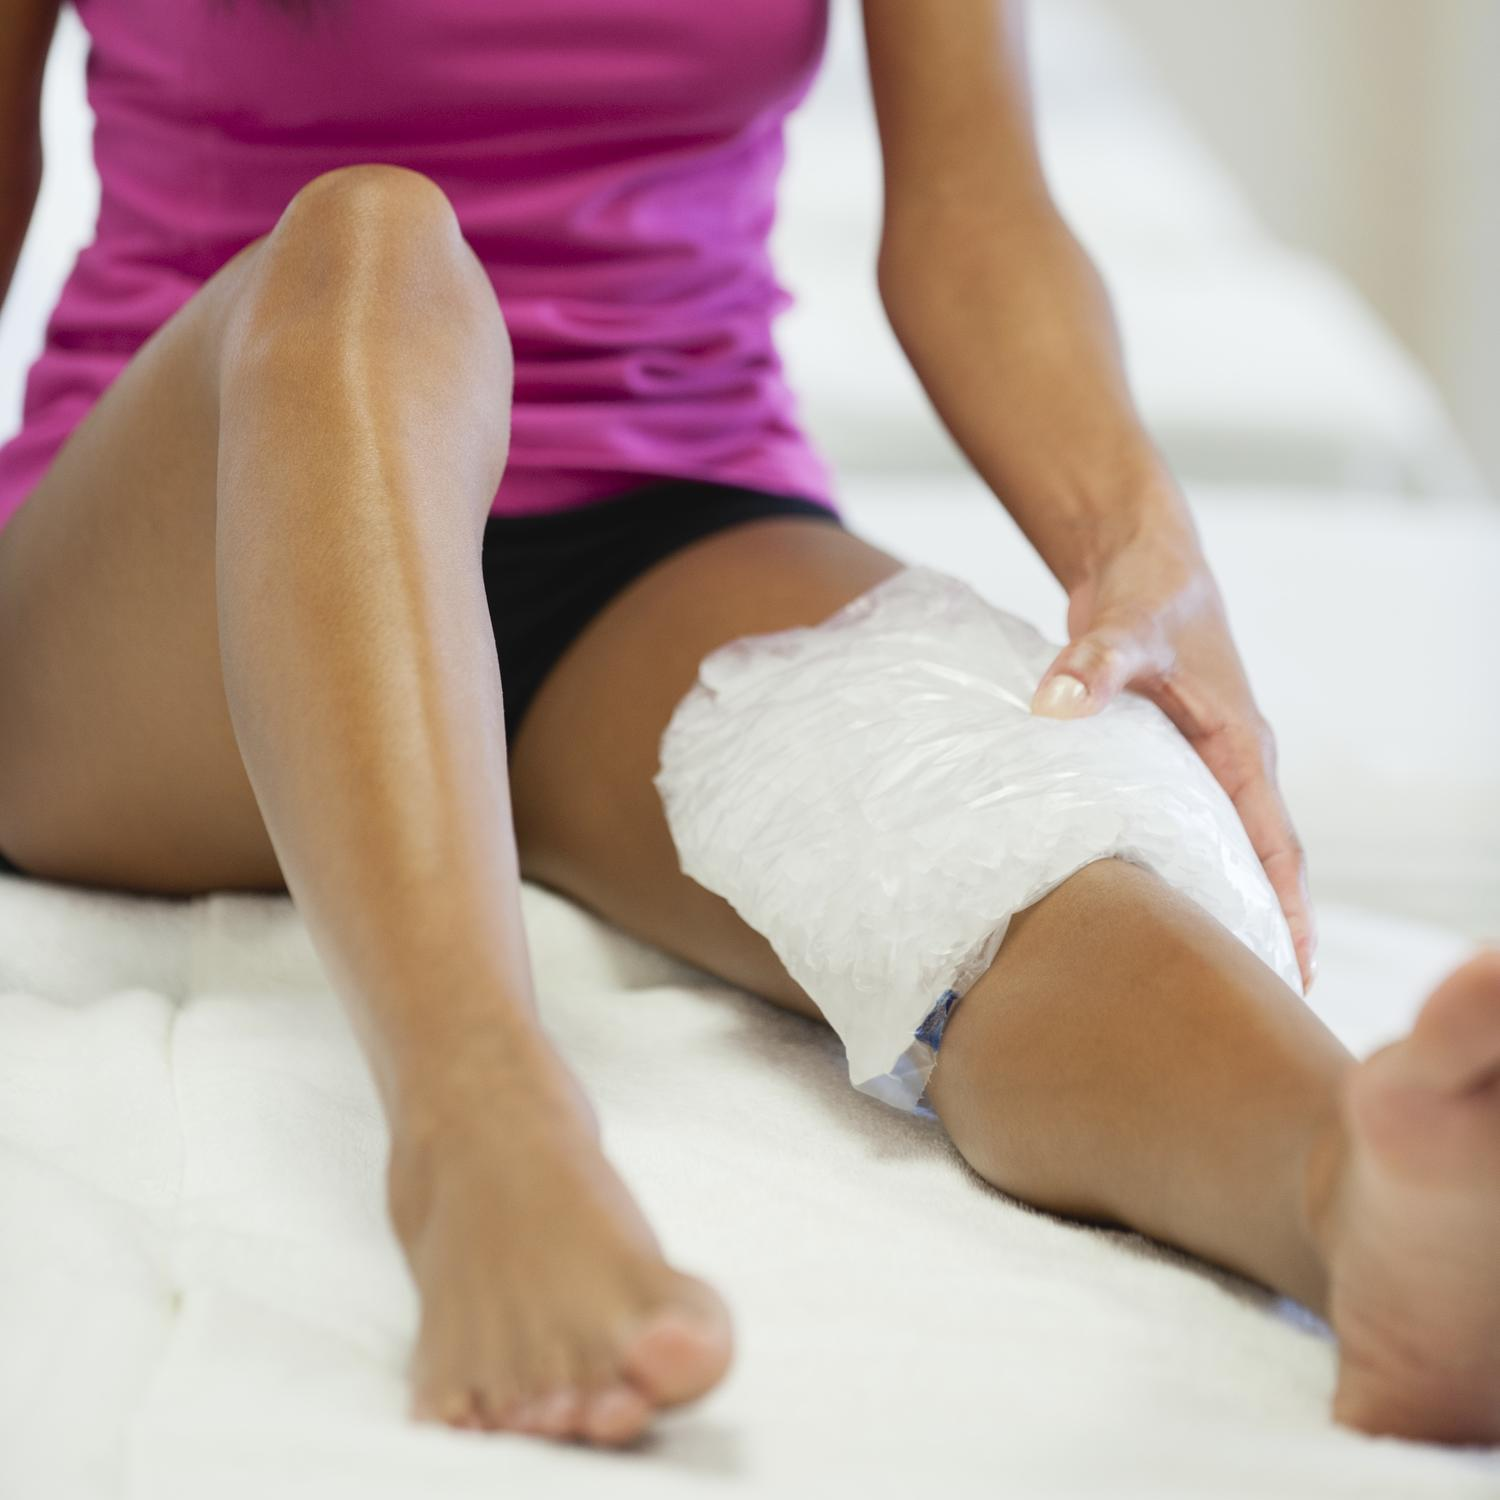 7 Things You Don't Realize Are Killing Your Knees